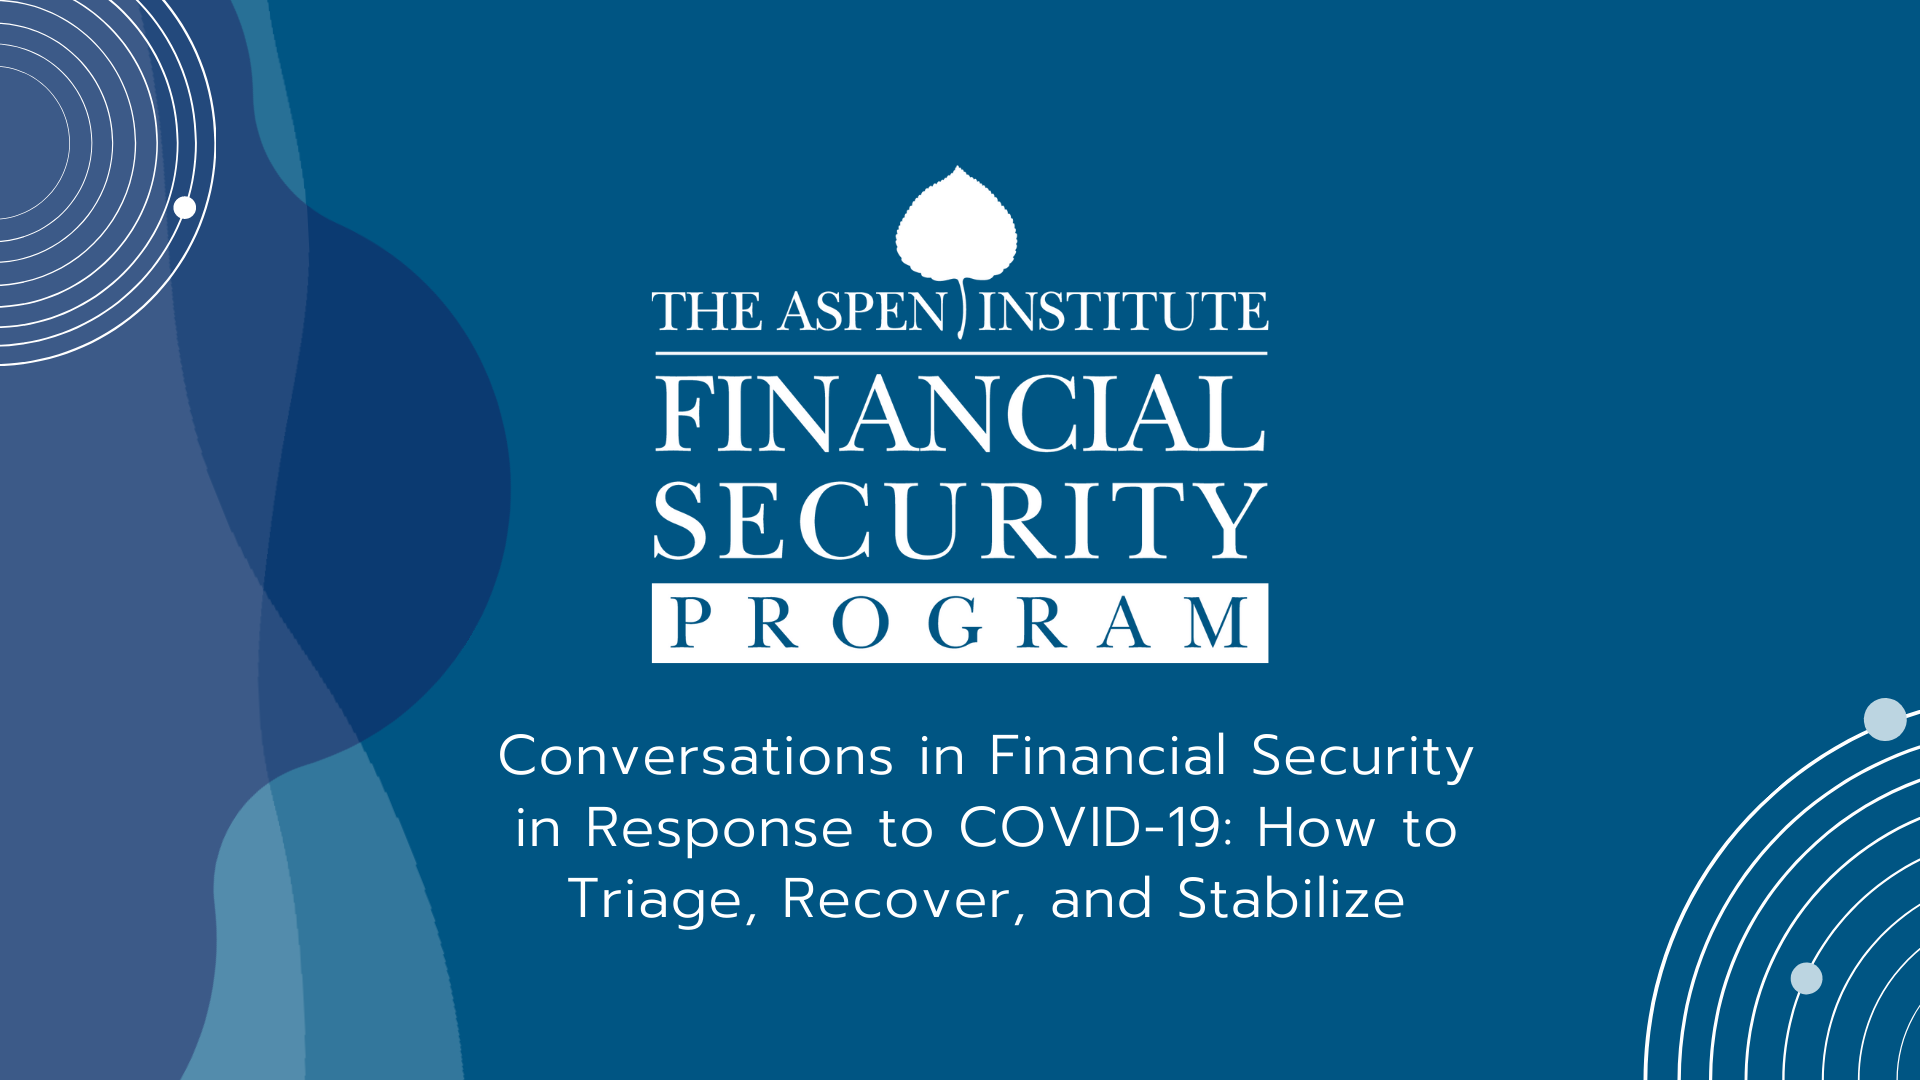 Conversations in Financial Security in Response to COVID-19